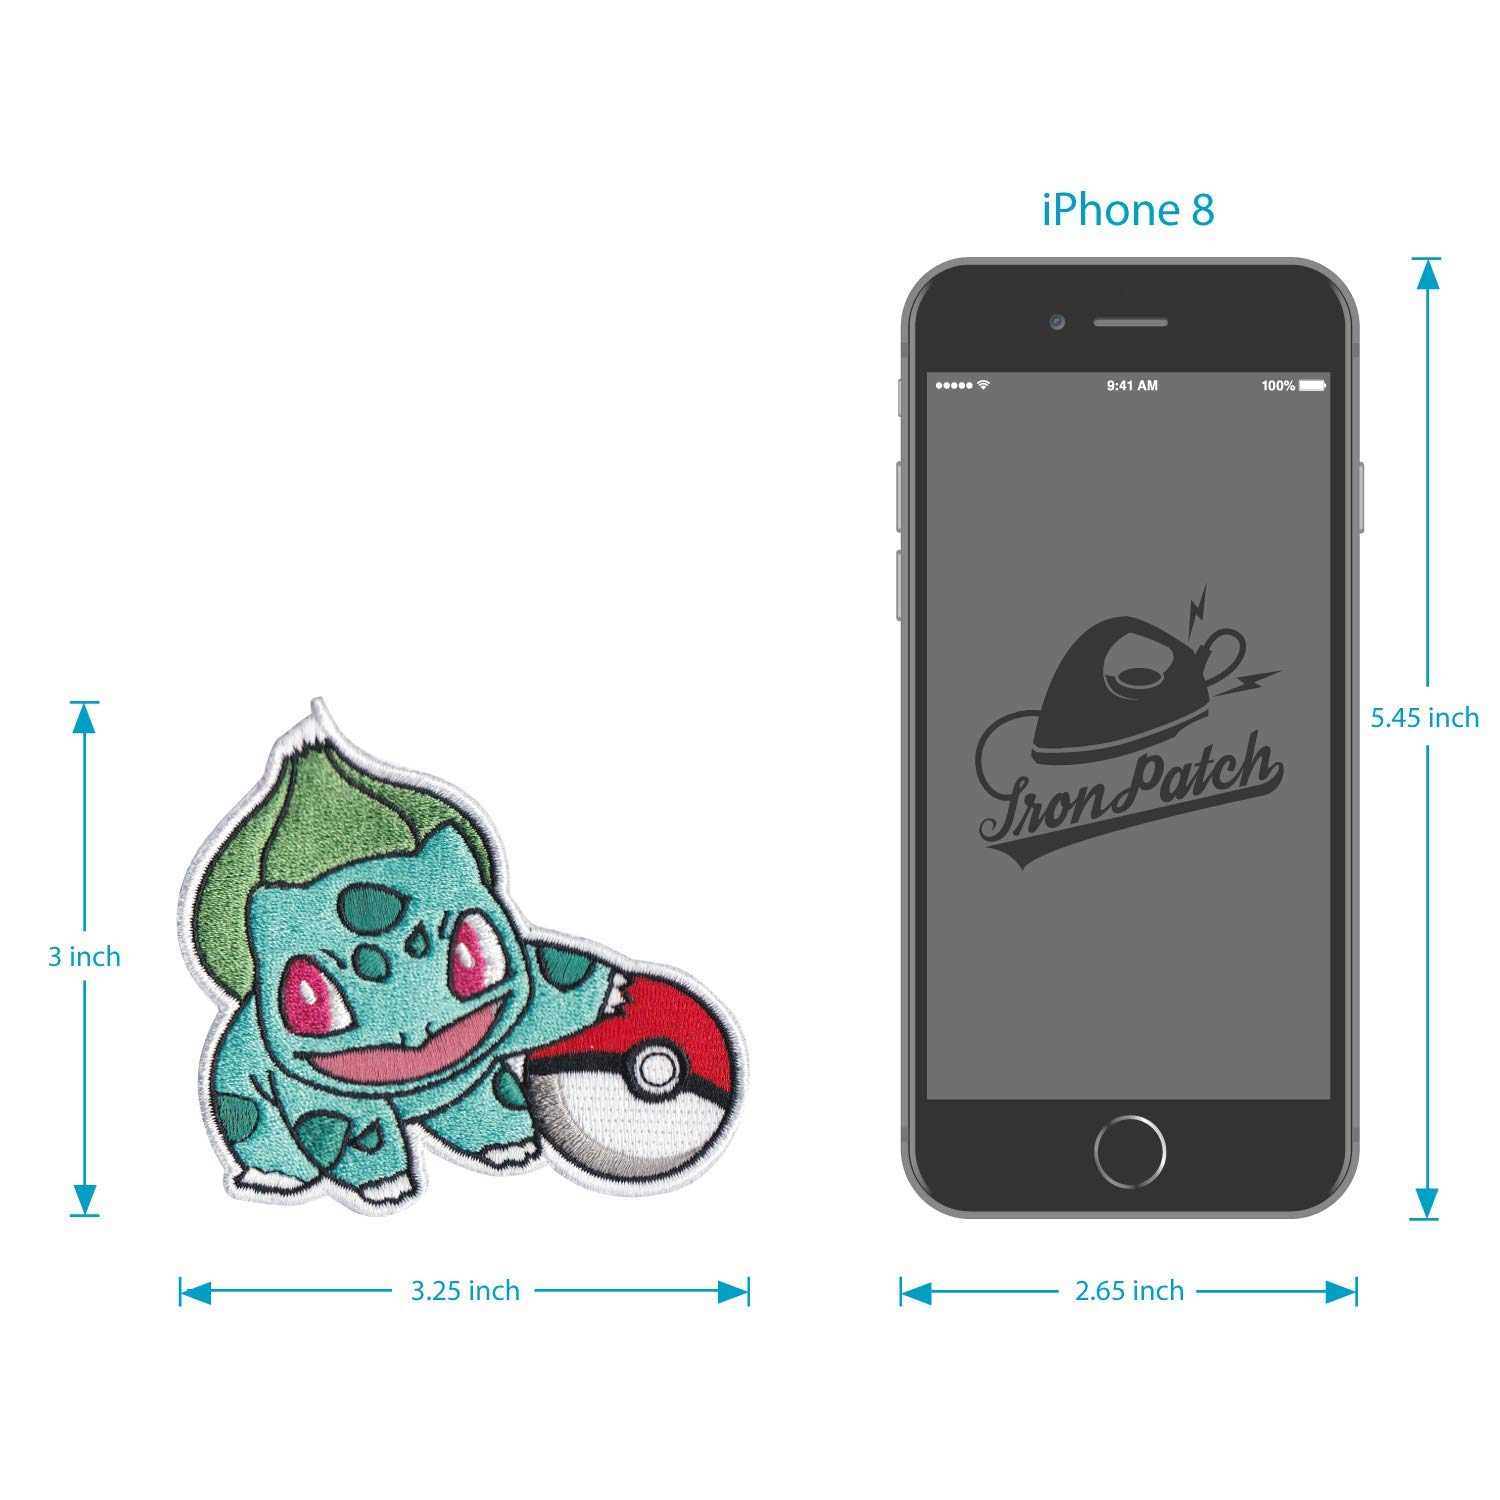 Hats Bulbasaur Anime Iron on /& Sew on Embroidered Applique Decoration DIY Craft for Tshirts Bags Denim Jackets